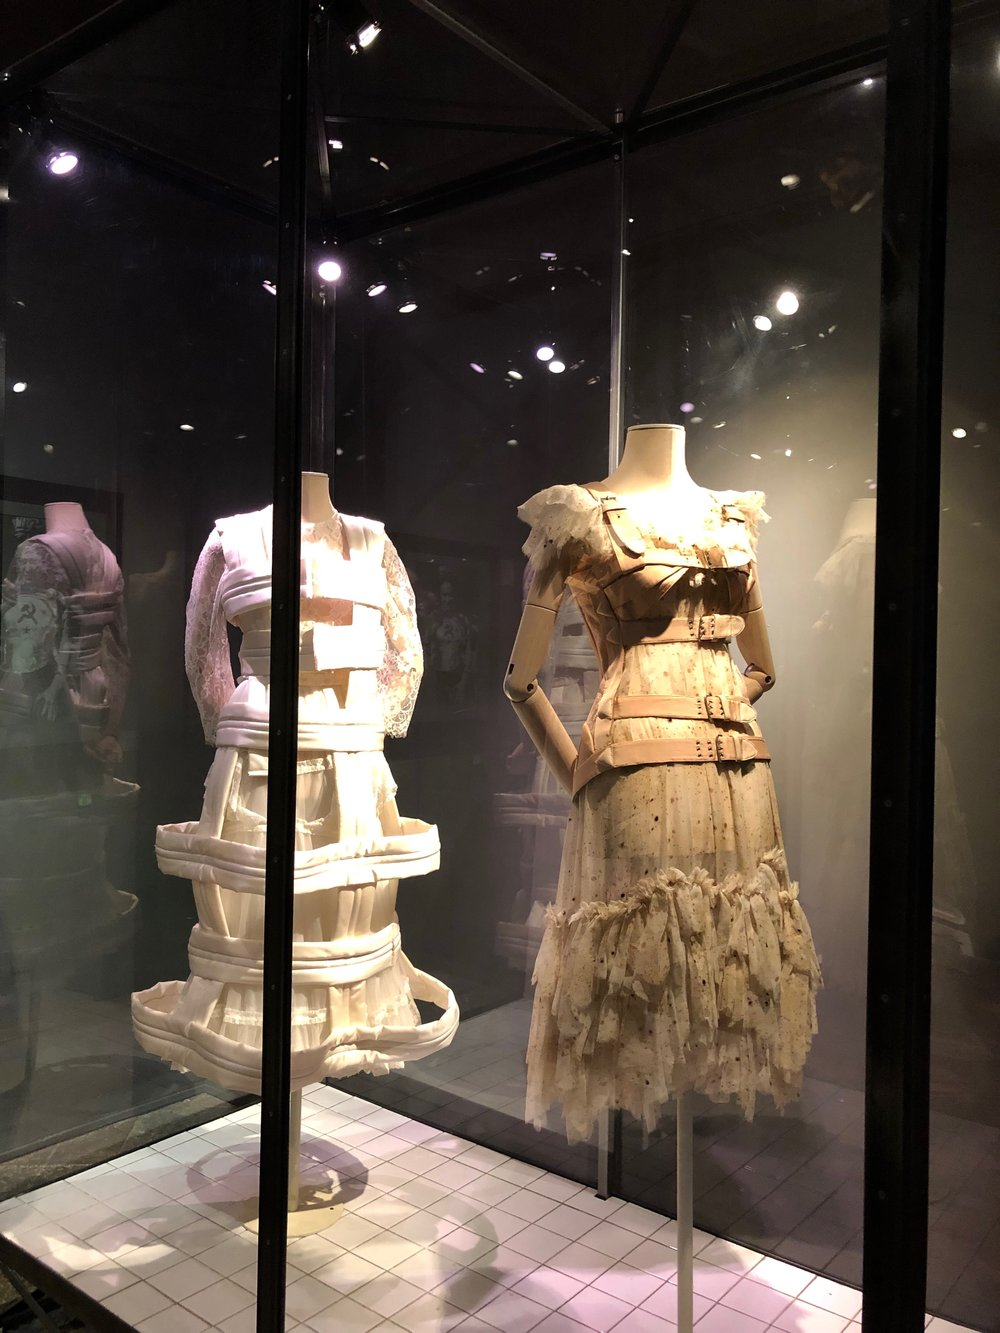 A dress by Comme des Garçons (left) and  The Freckles  by Gaultier